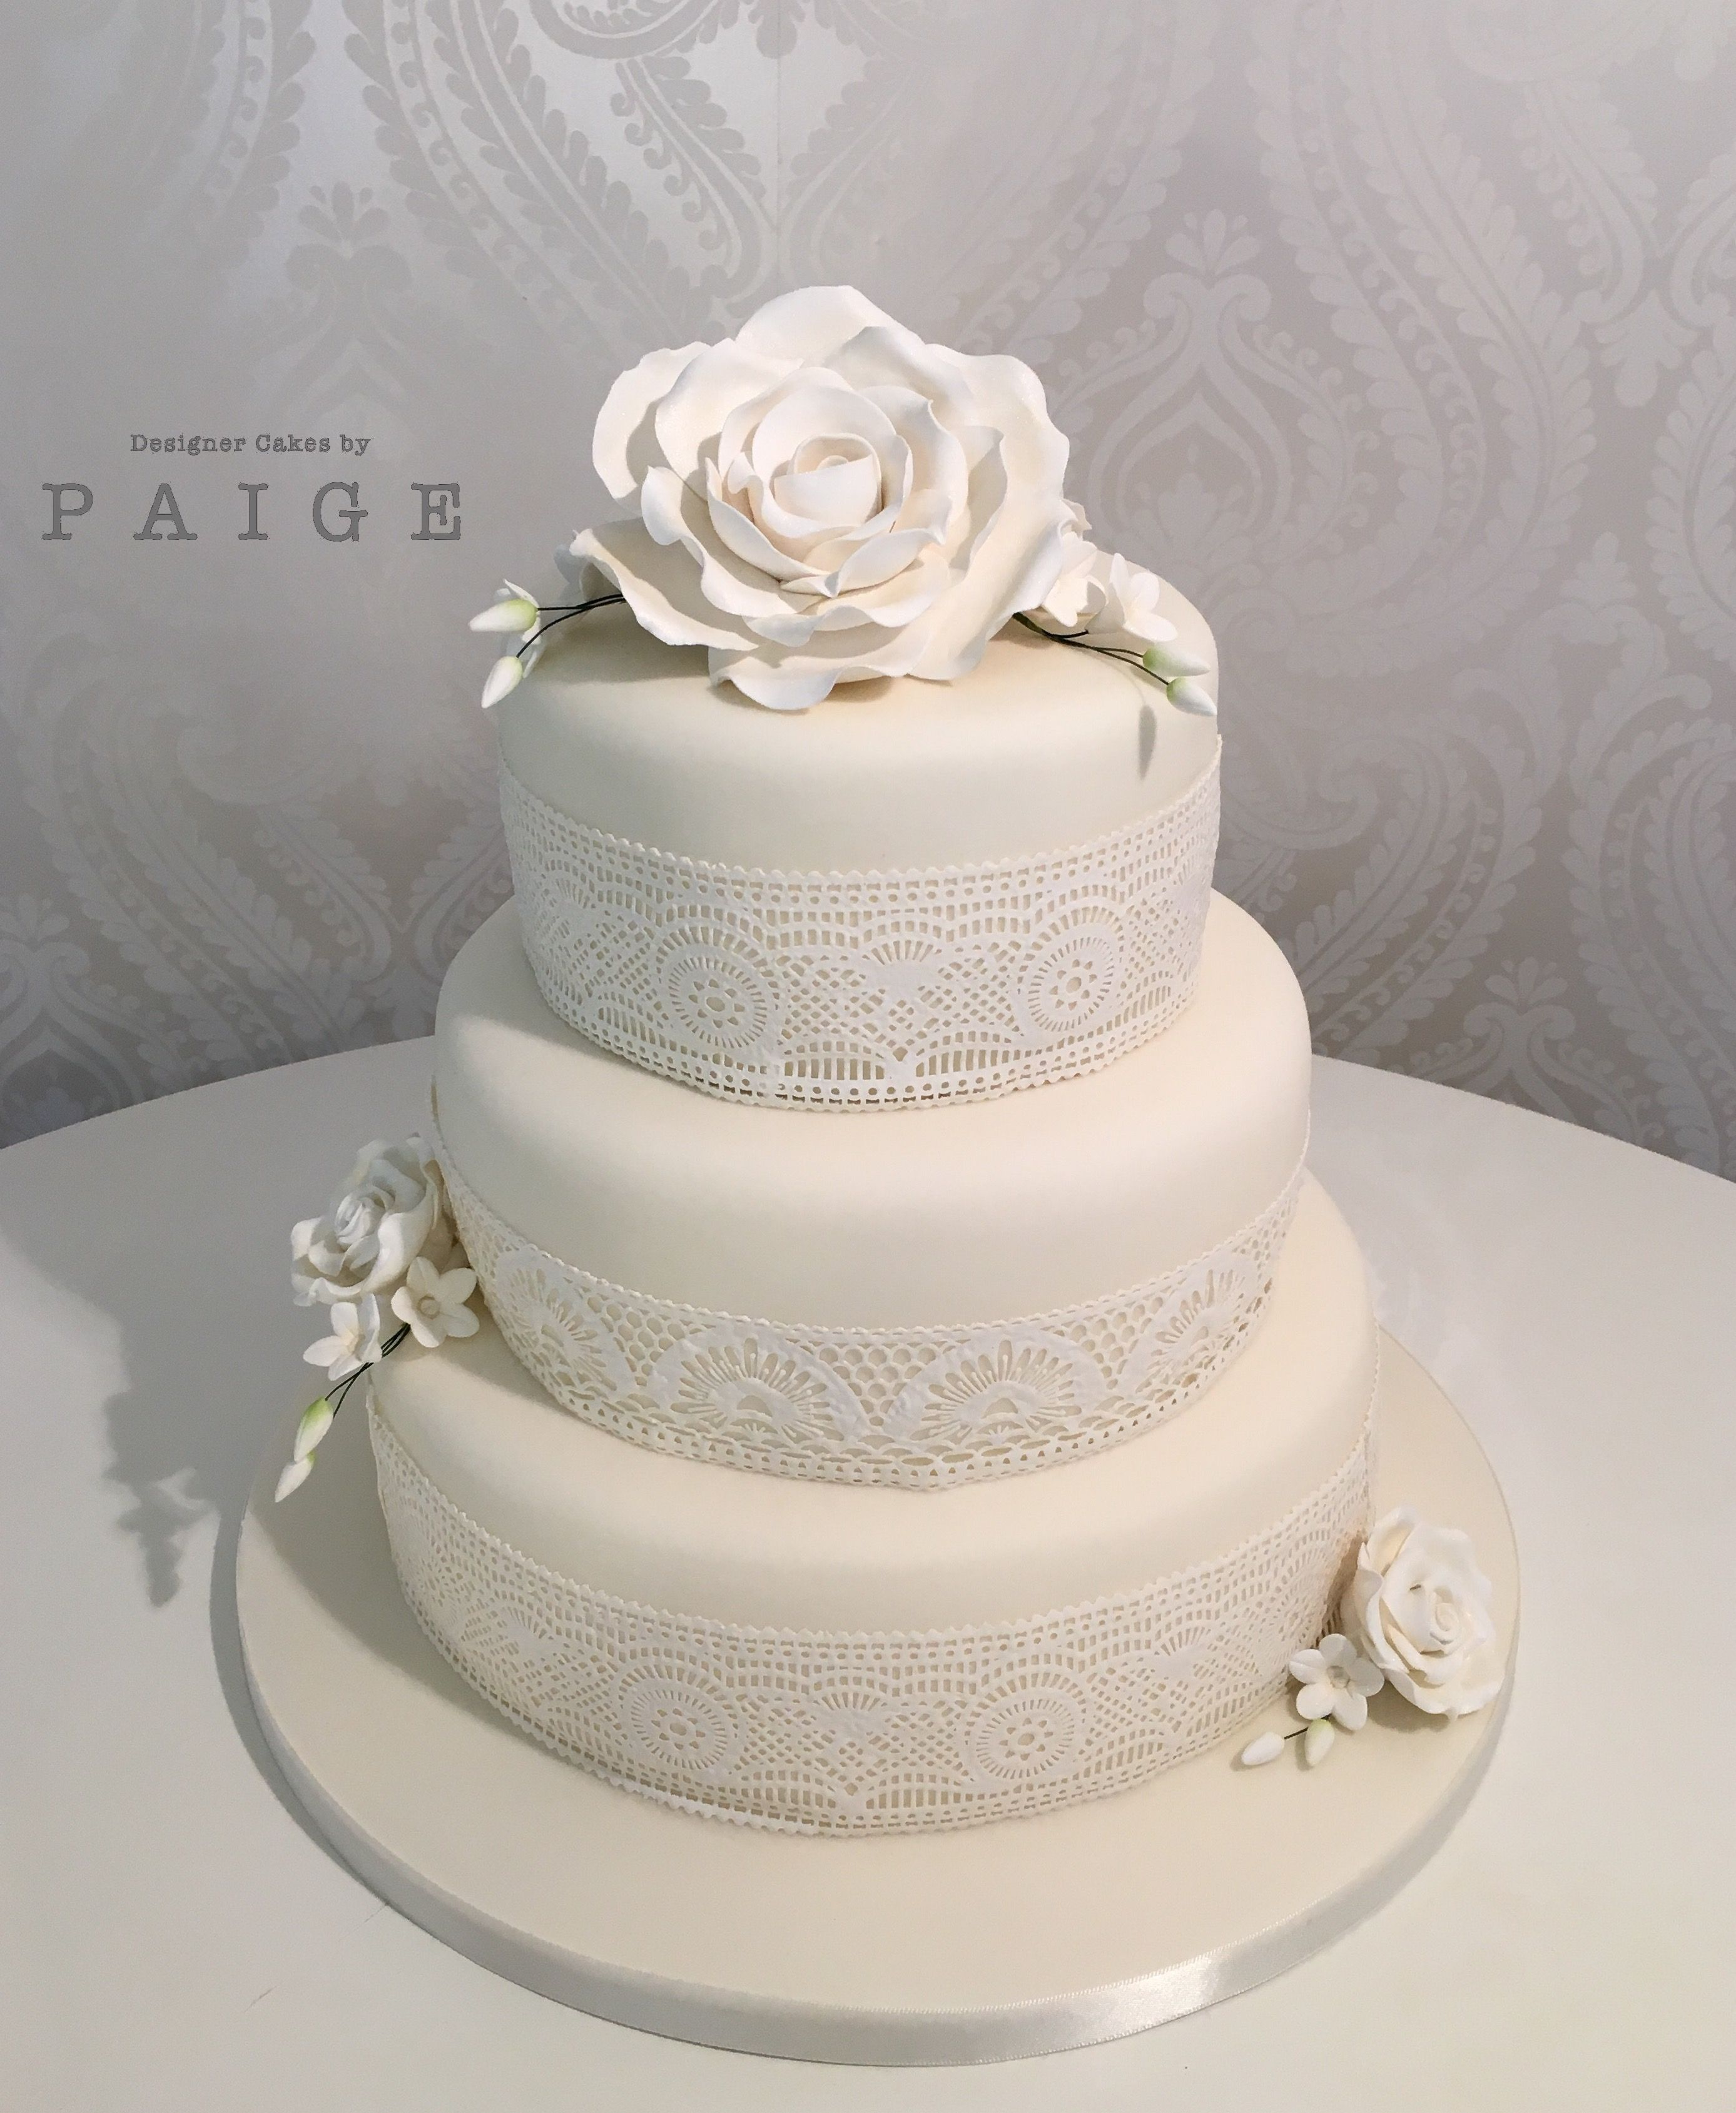 Pin by designer cakes by paige on wedding cakes pinterest